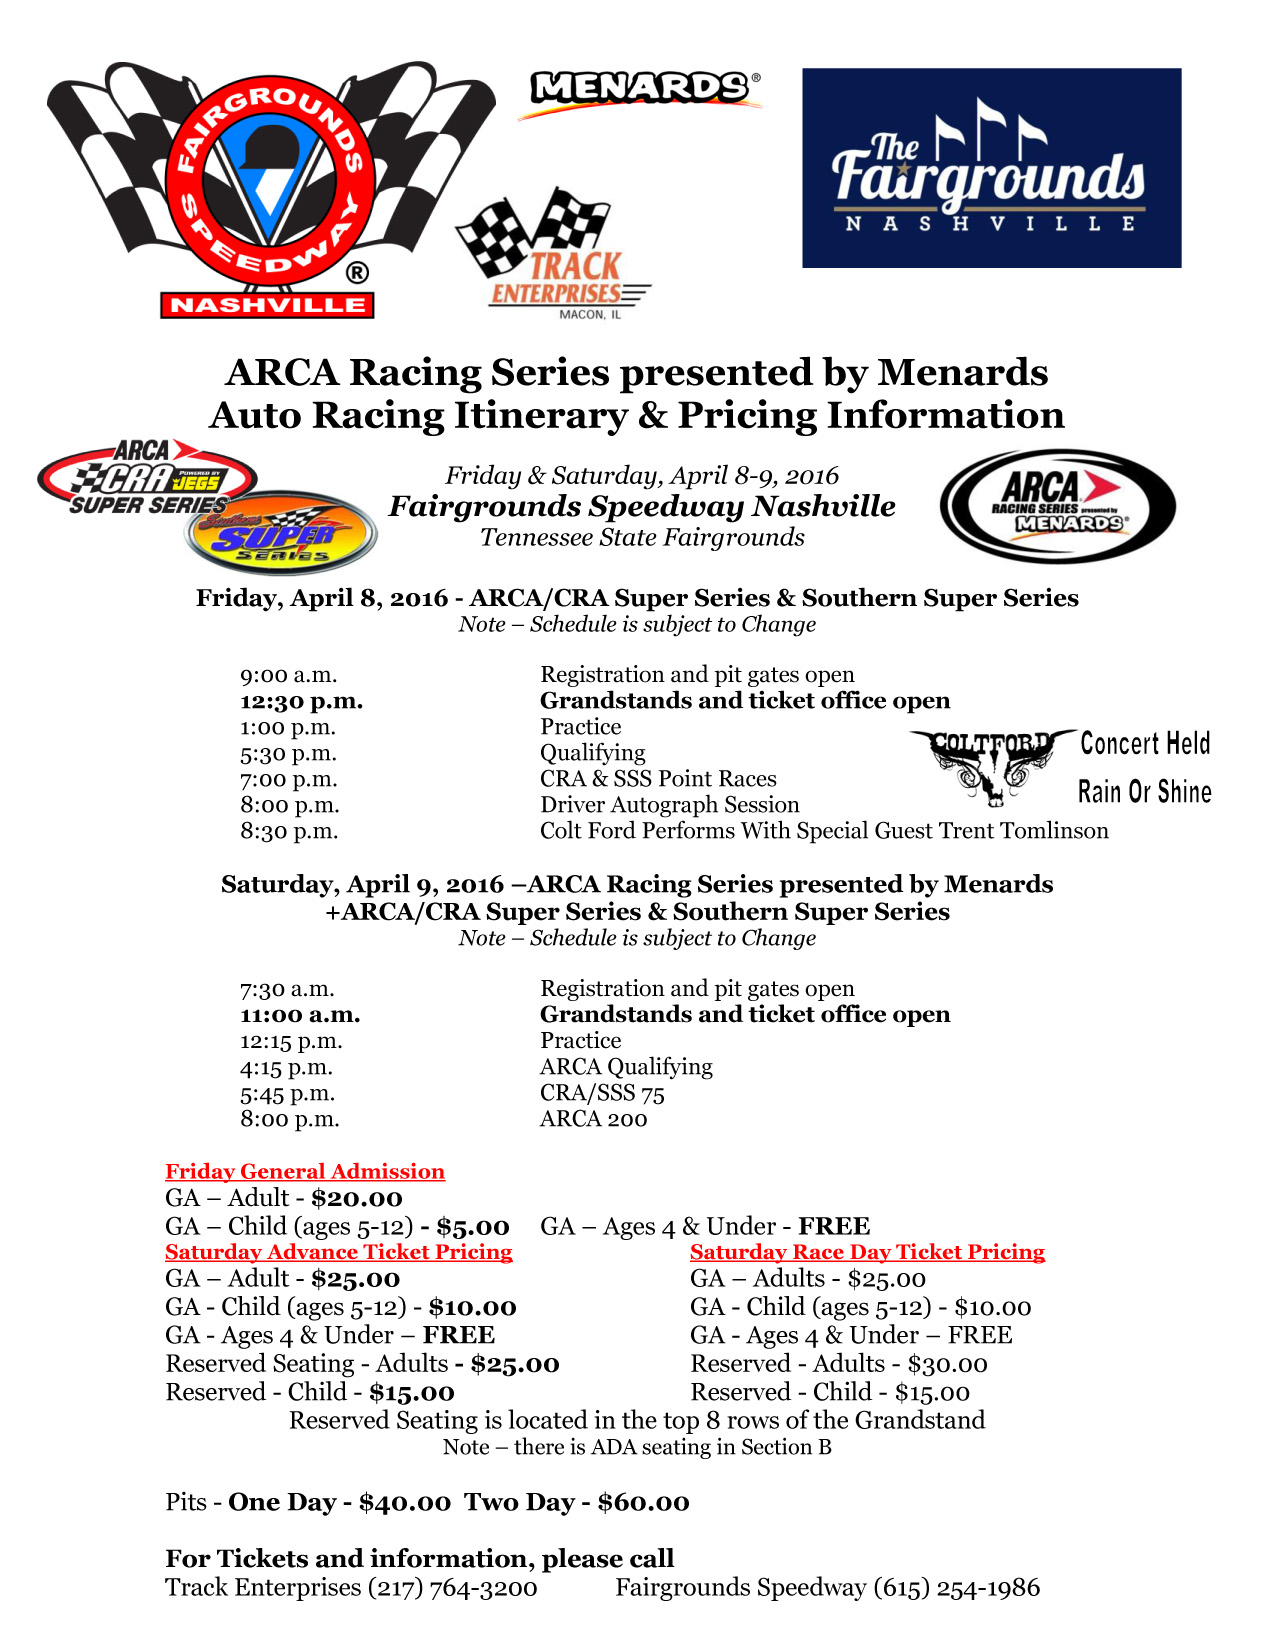 Springfield State Fair Auto Racing Itinerary